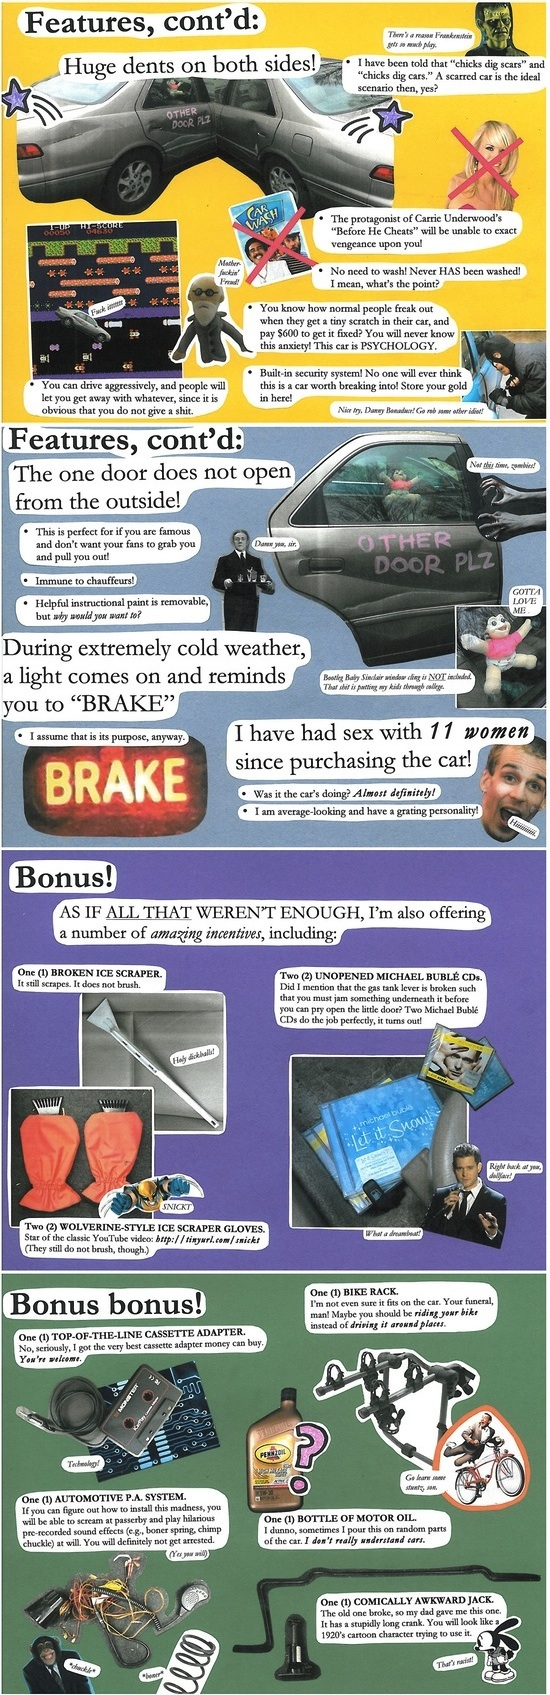 The Most Creative Used Car Ad Ever On Craigslist | Someecards Automotive